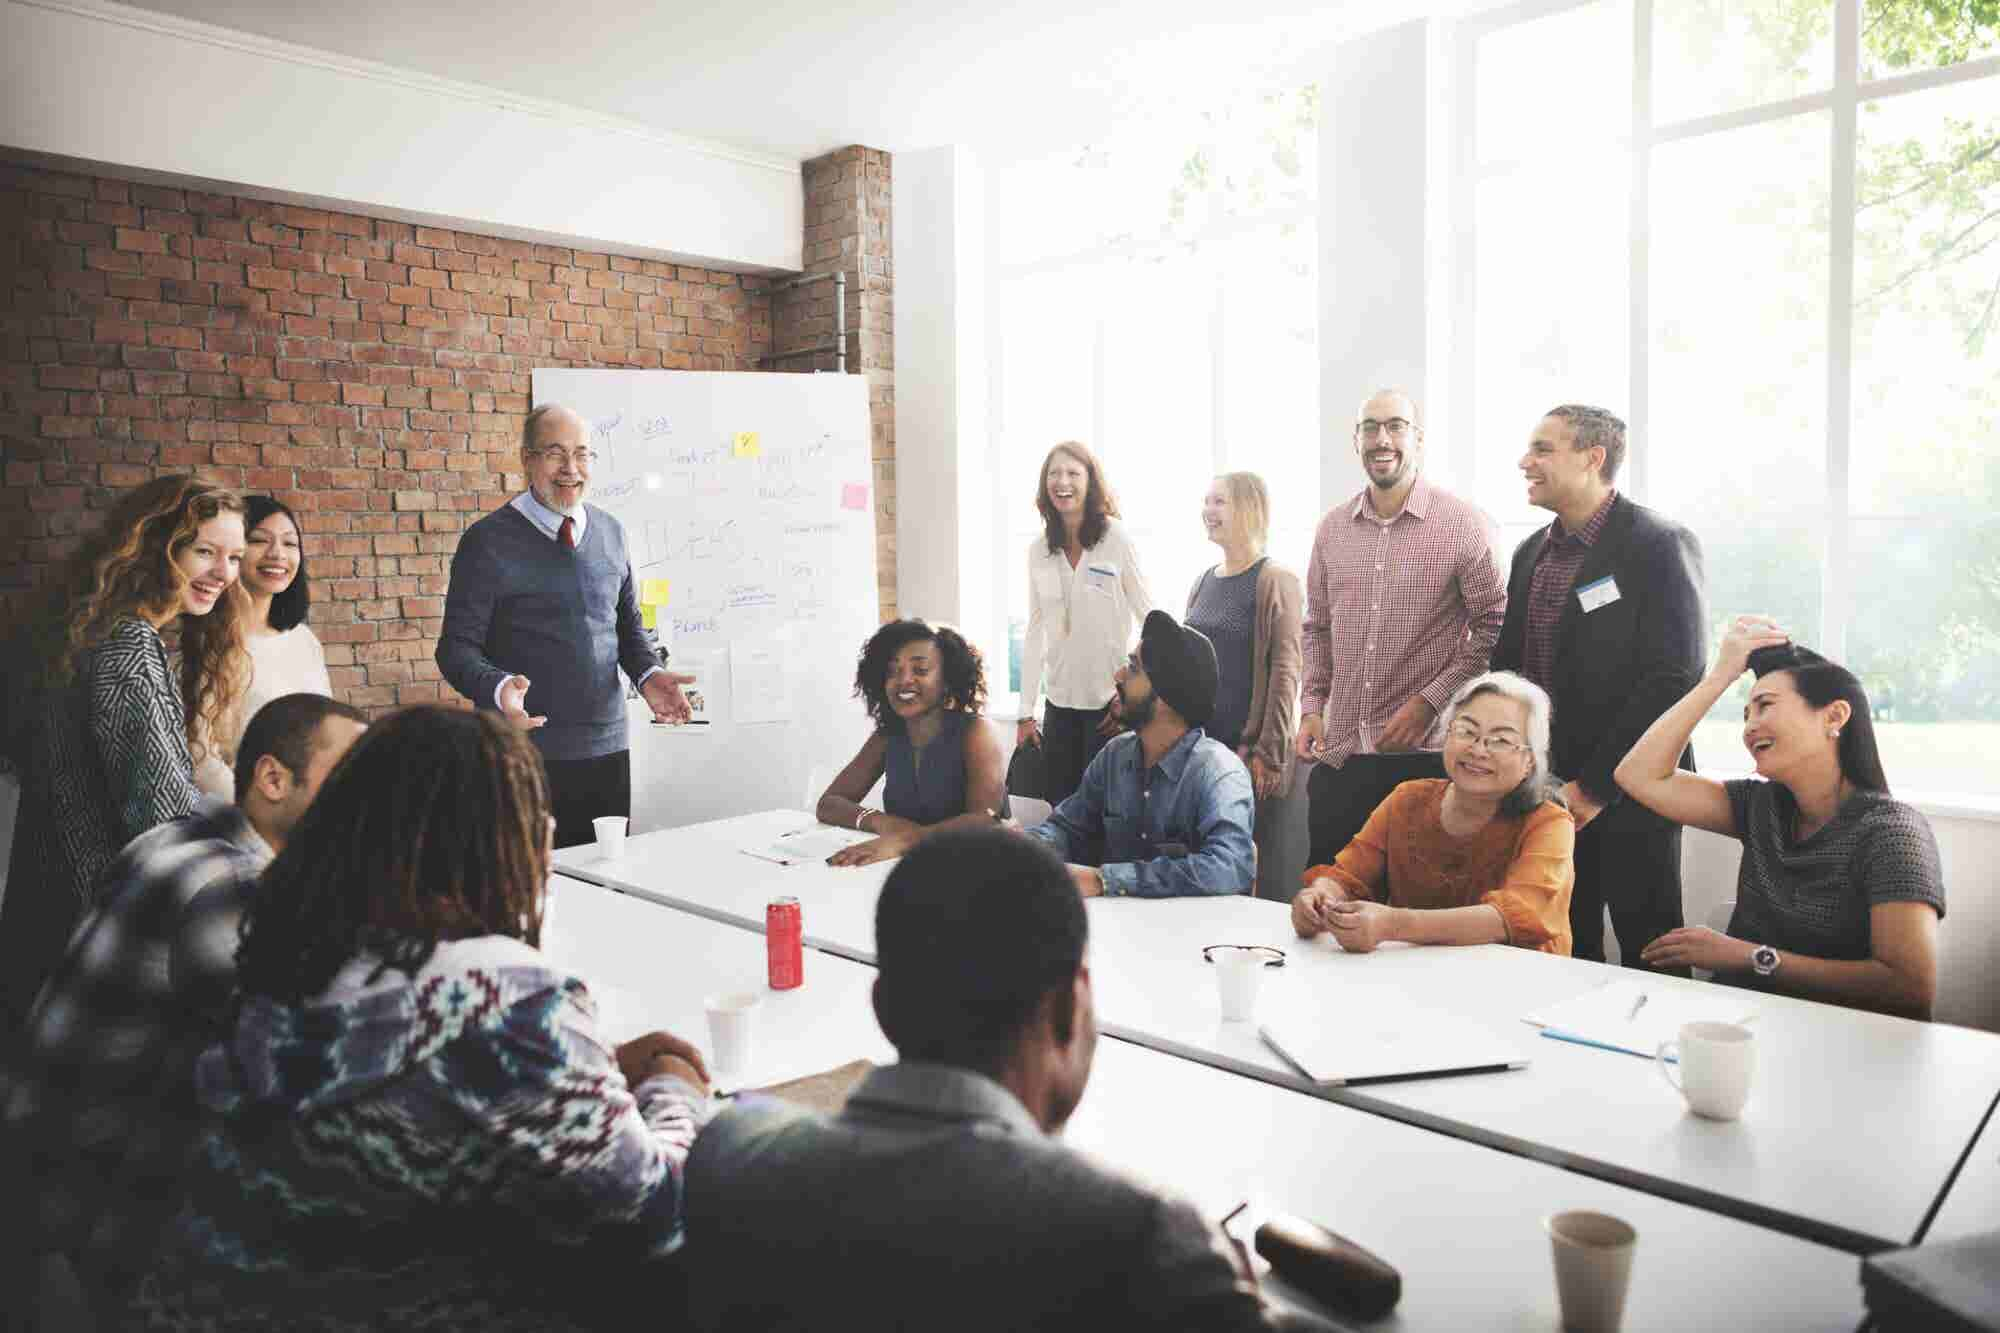 When Acquiring a Company, Don't Forget About the People